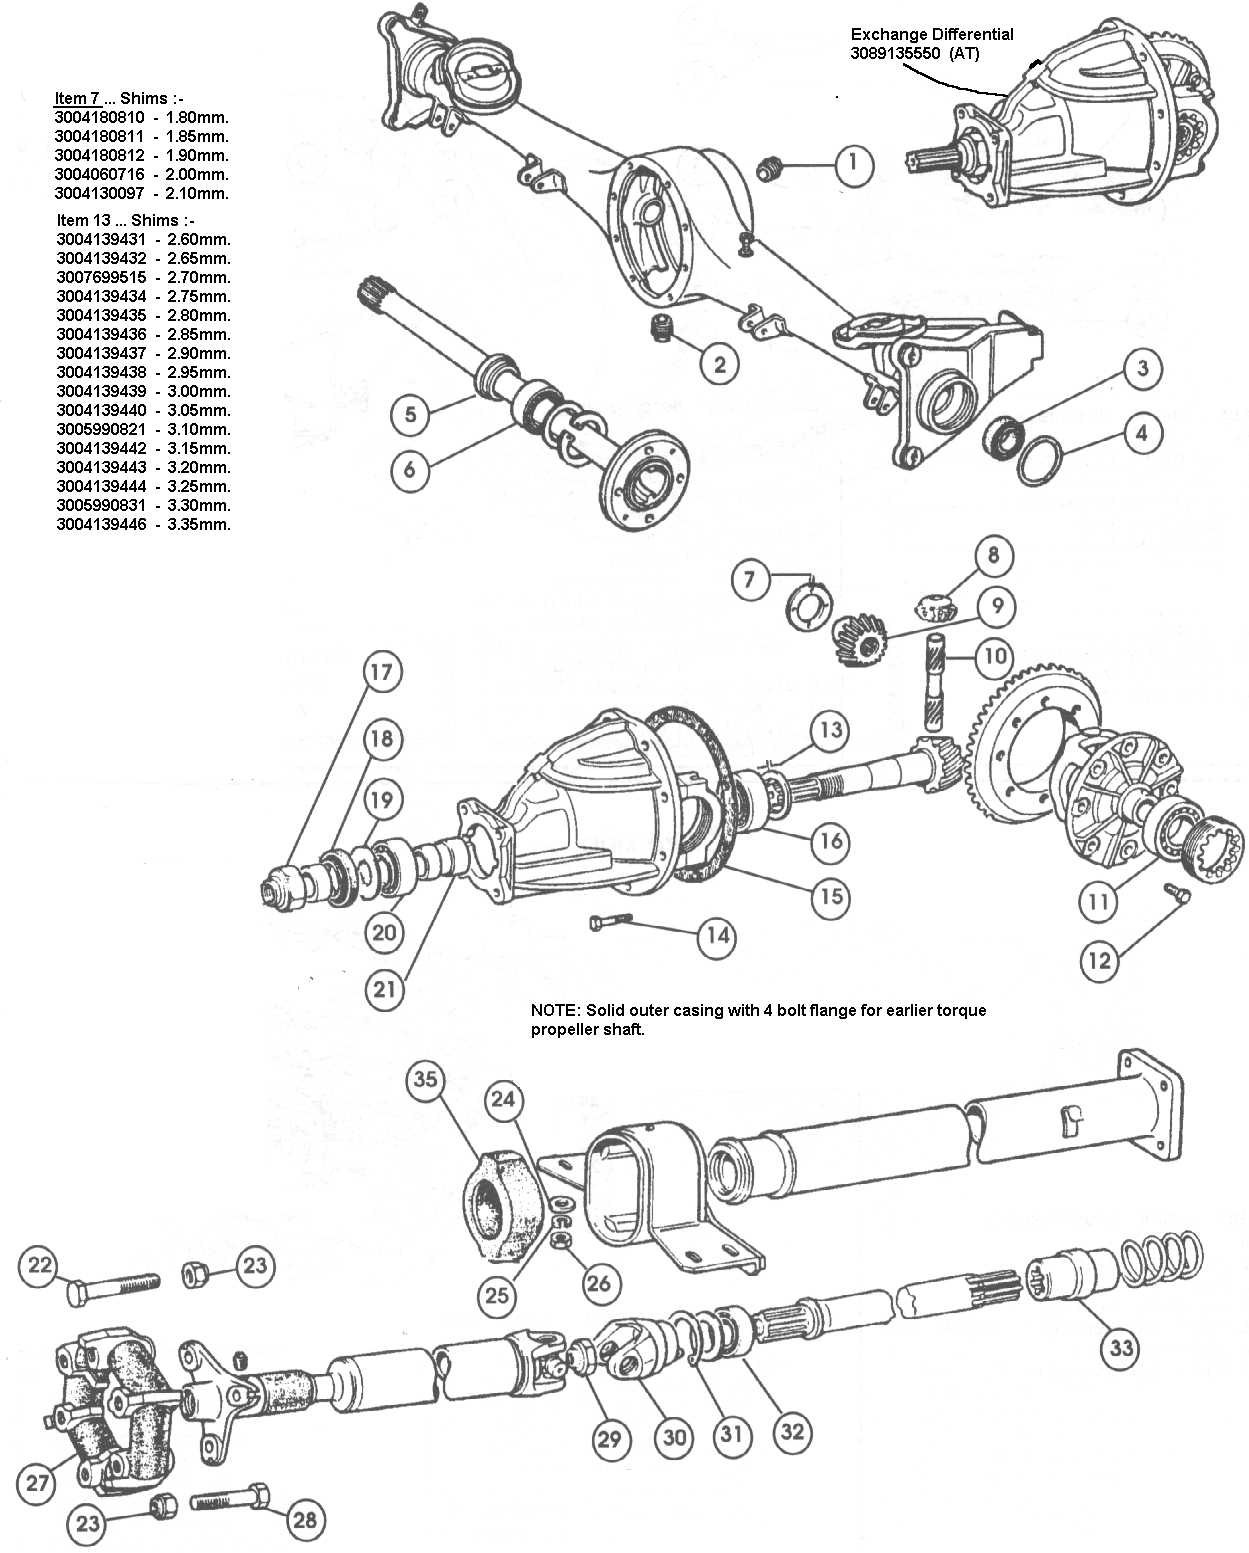 Fiat 124 Rear Axle Schematic - Wiring Diagram Fascinating Harley Chopper Wiring Diagram on